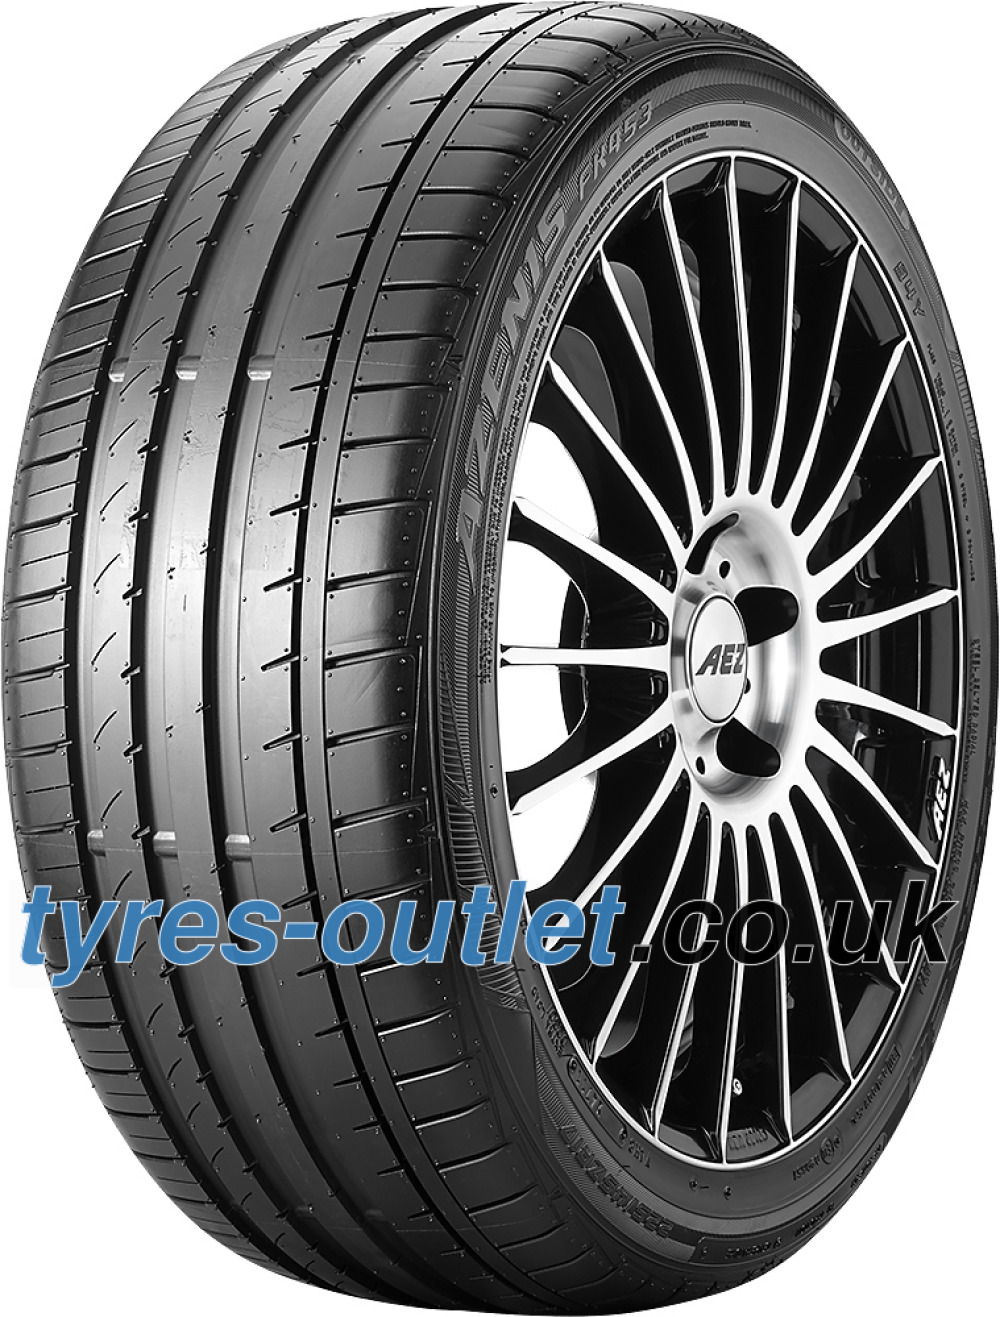 Falken Azenis FK453 ( 215/35 ZR19 85Y XL with rim protection (MFS) )